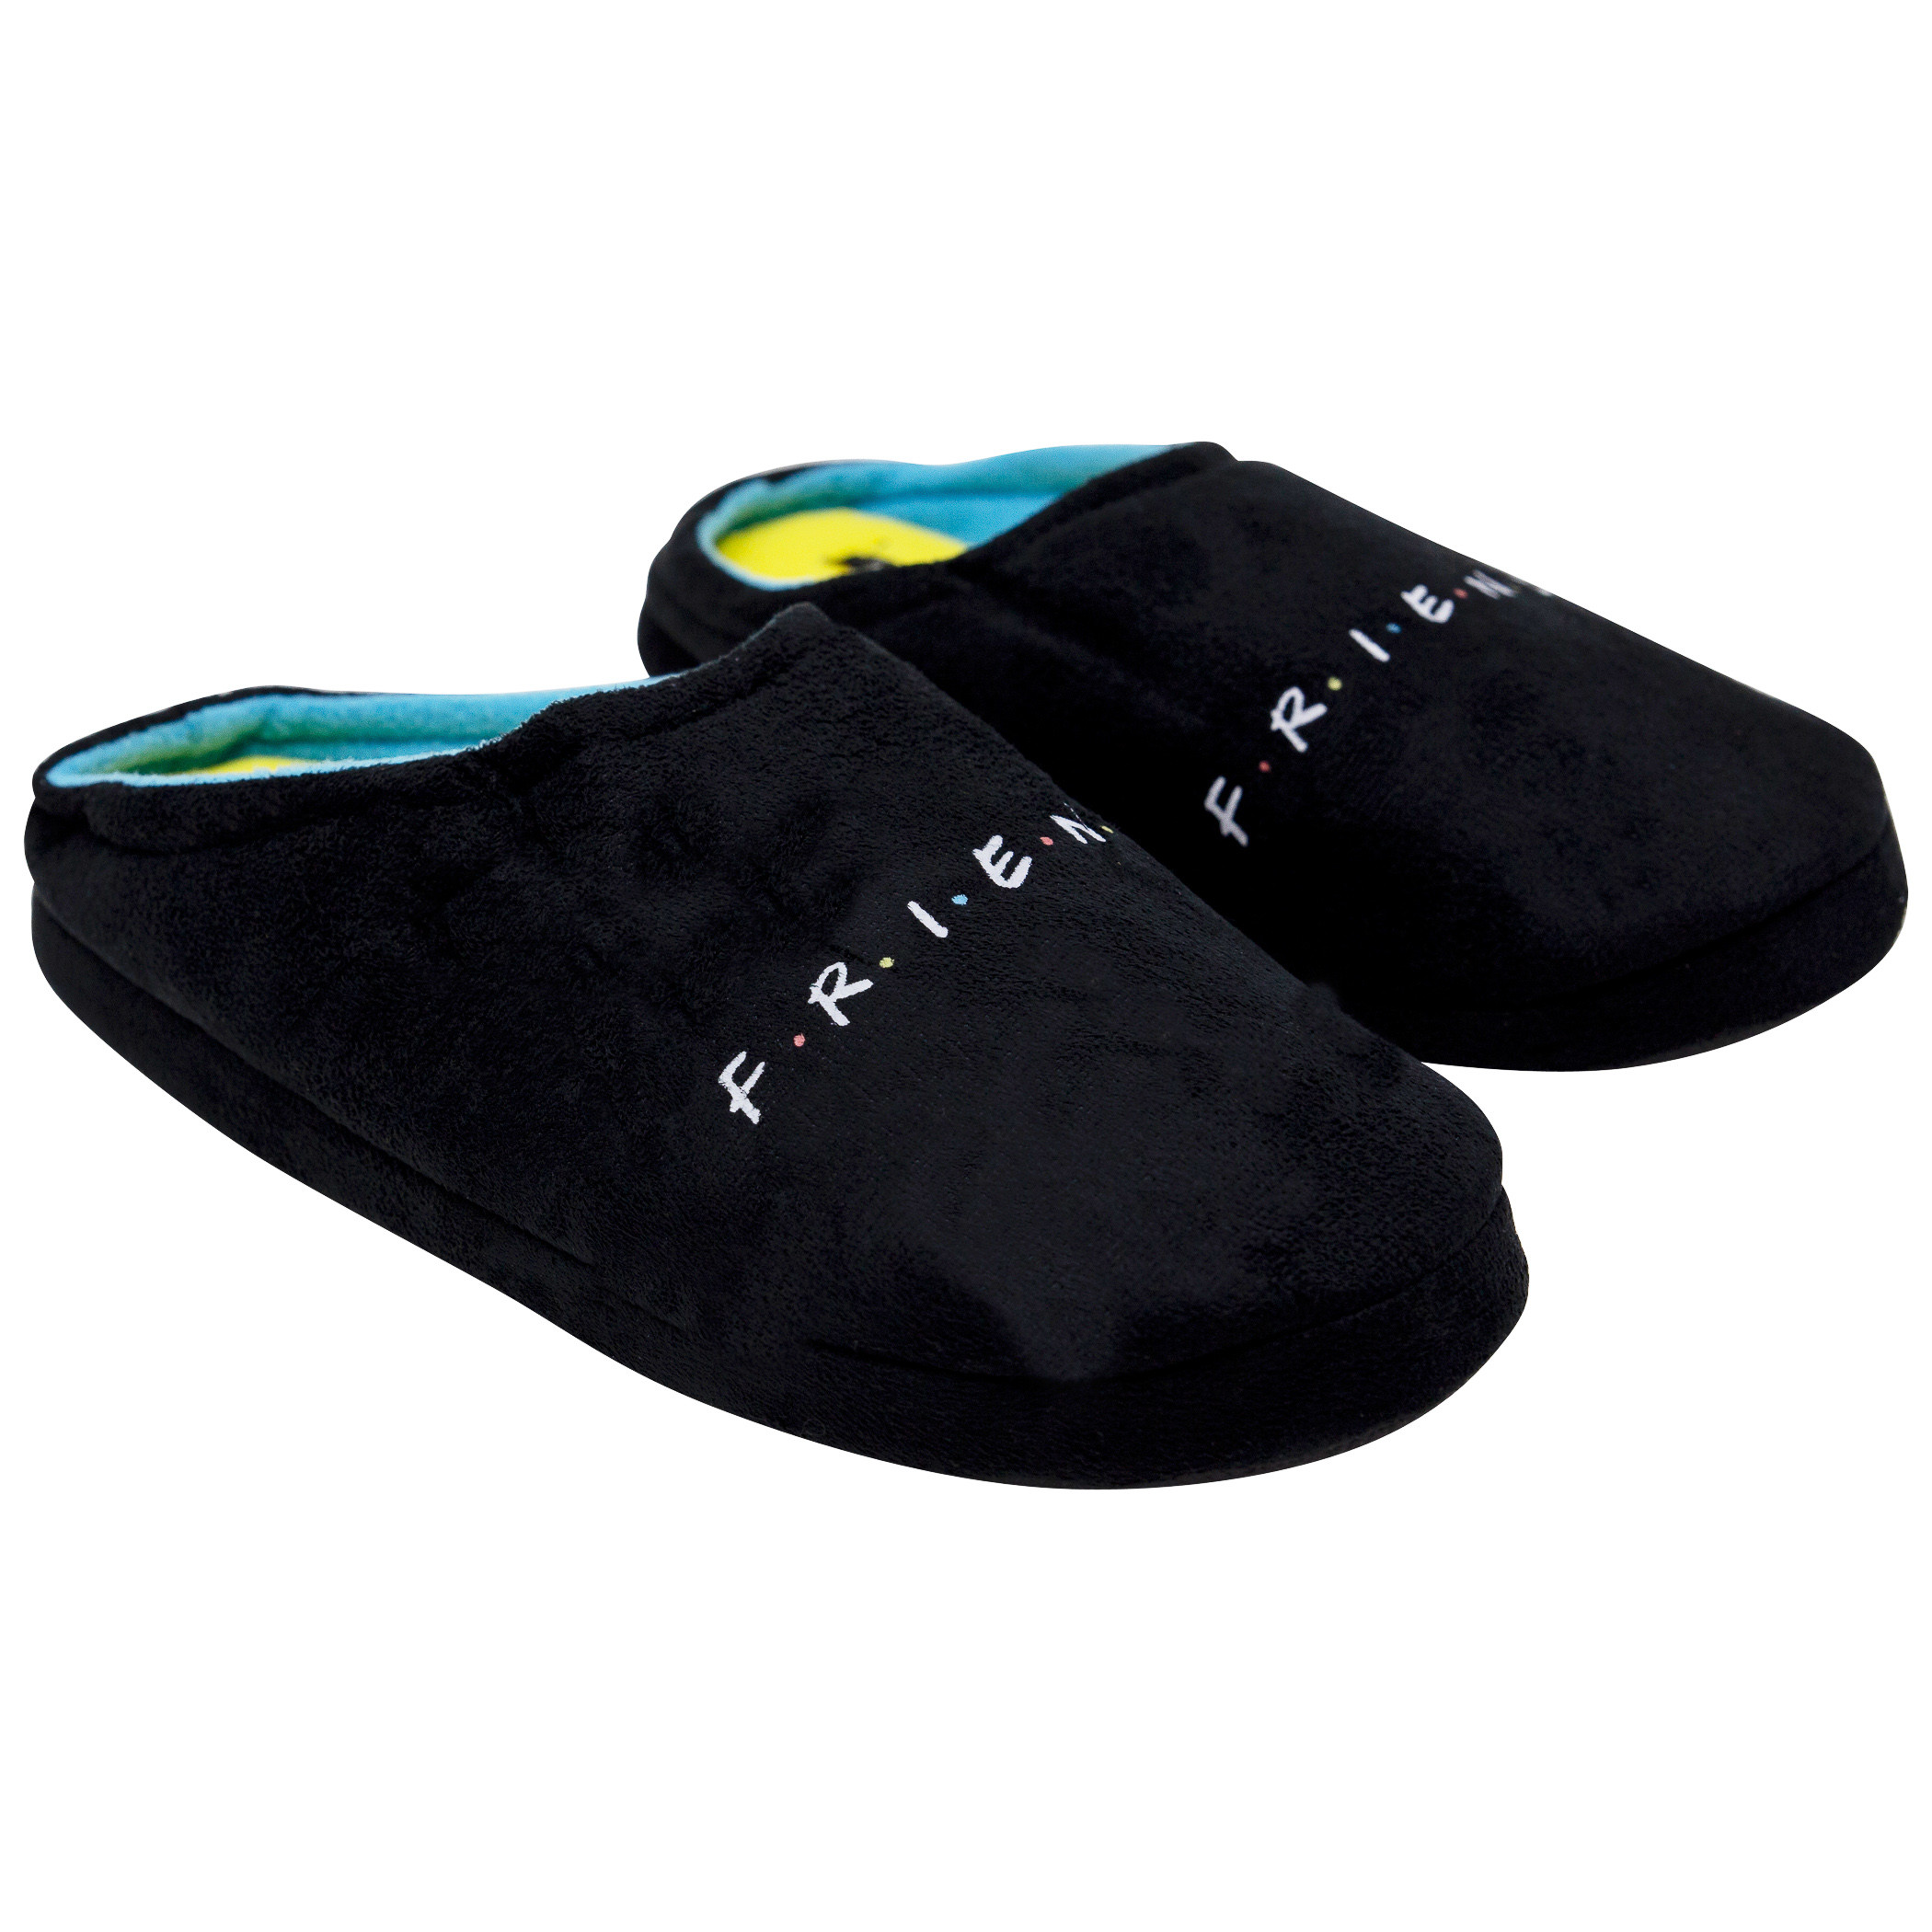 Pantofole Friends unisex